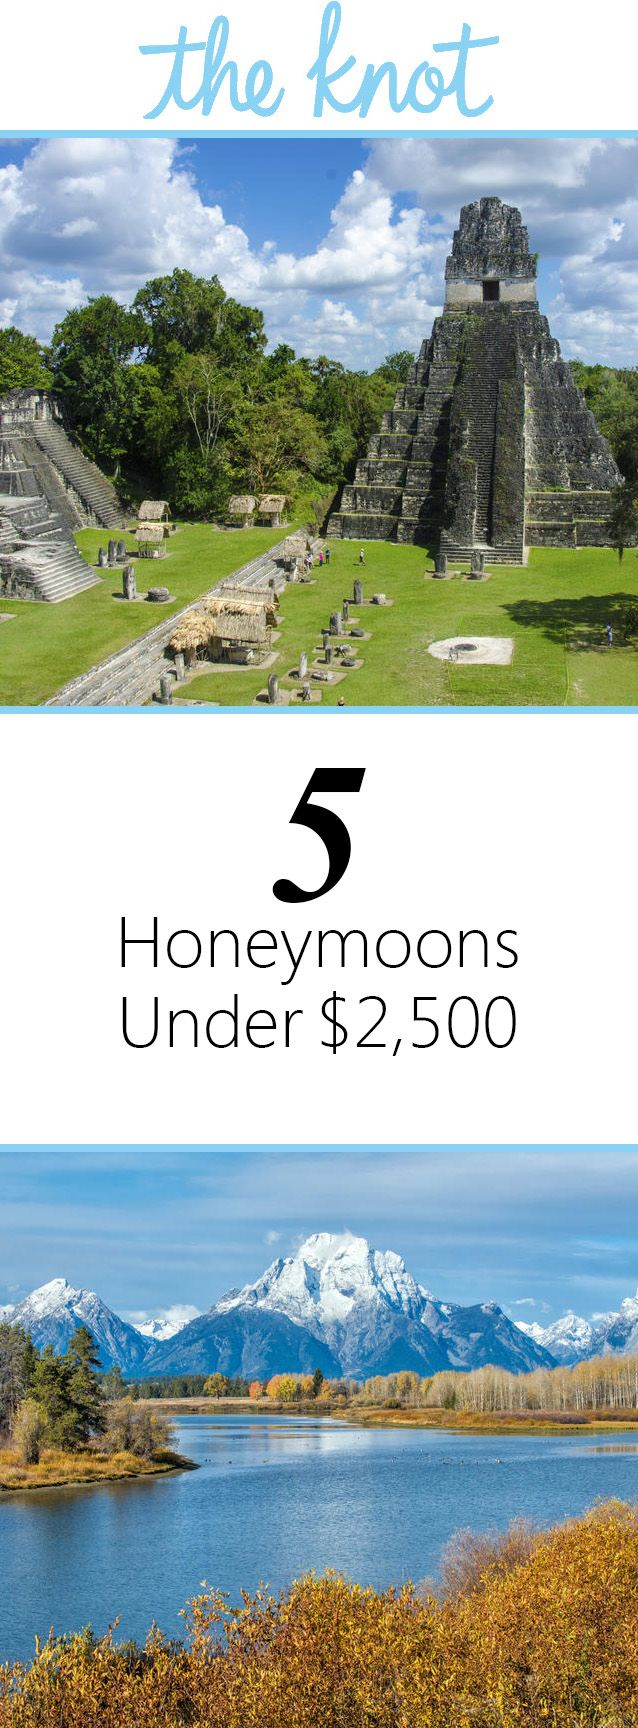 5 Honeymoons Under $2,500 | https://www.theknot.com/content/top-5-honeymoons-under-2500